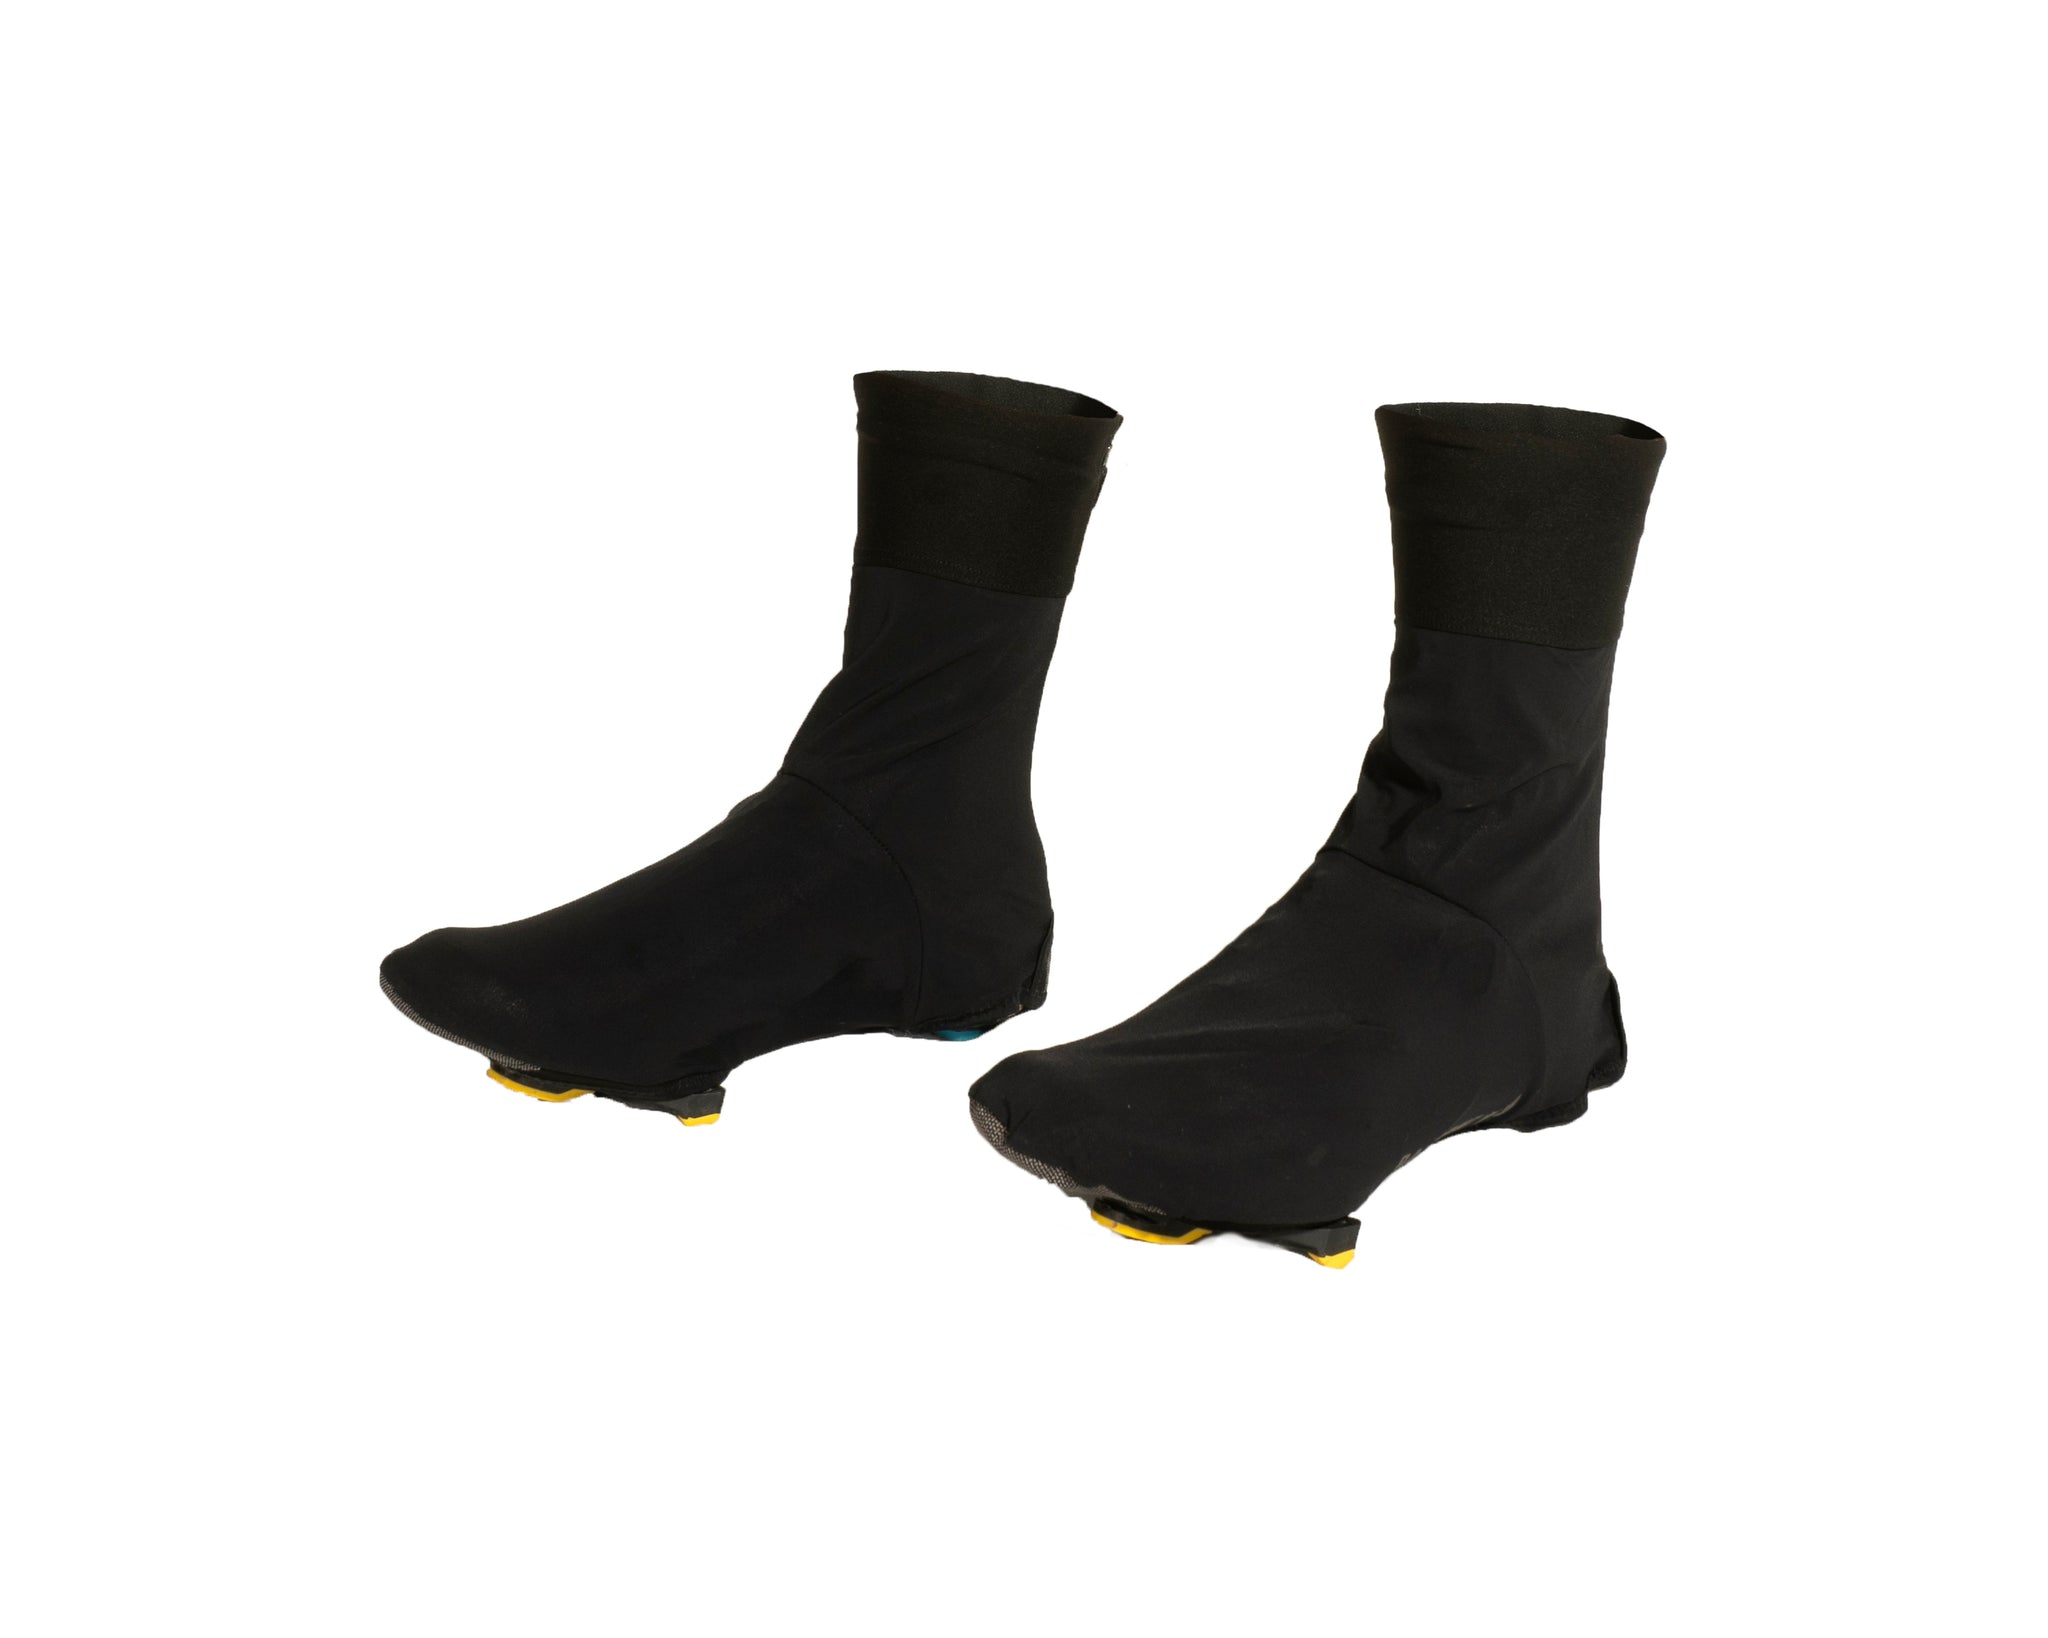 Pro Issue Rain & Wind Shoe Cover